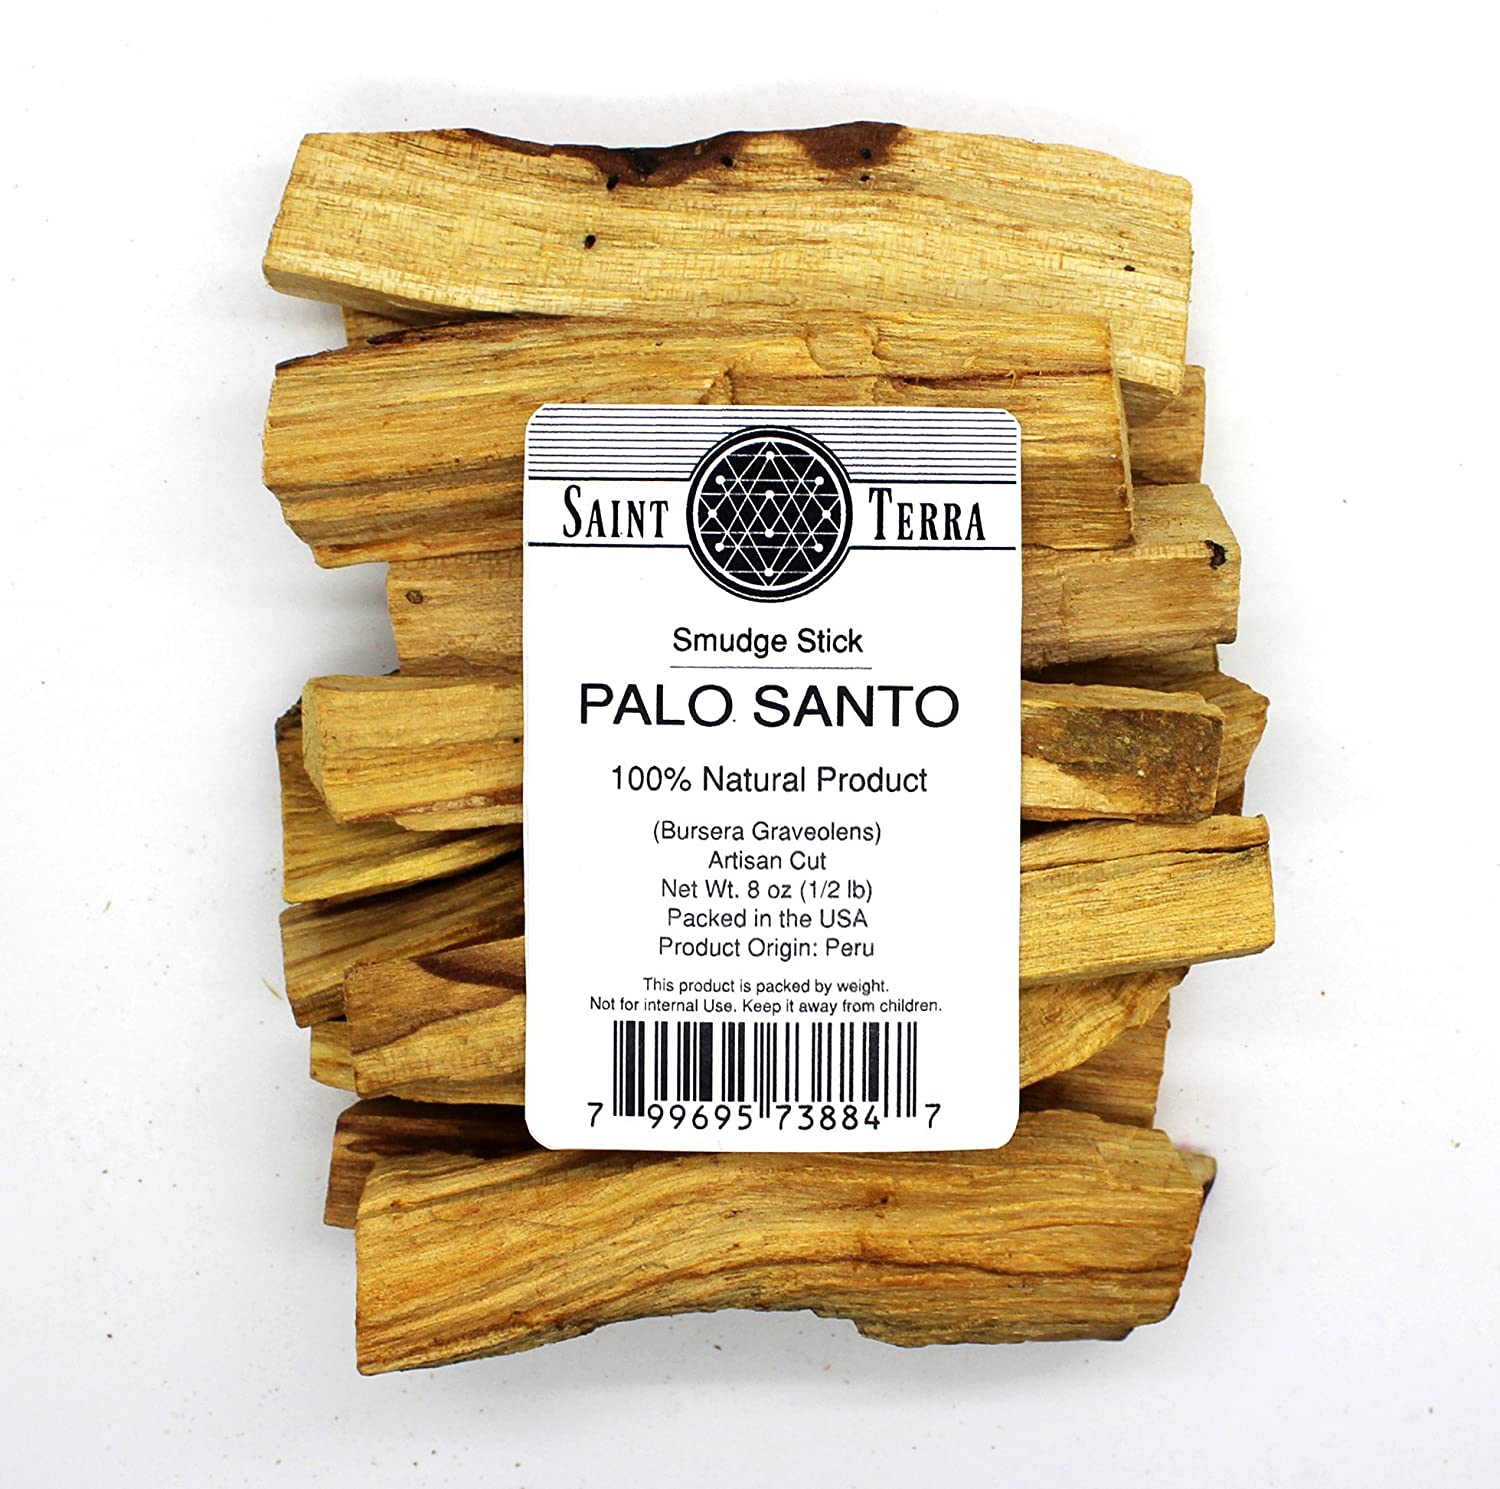 Saint Terra - Premium Palo Santo (Holy Wood) 8 oz Pack Artisan Cut Smudge Stick - 100% Natural